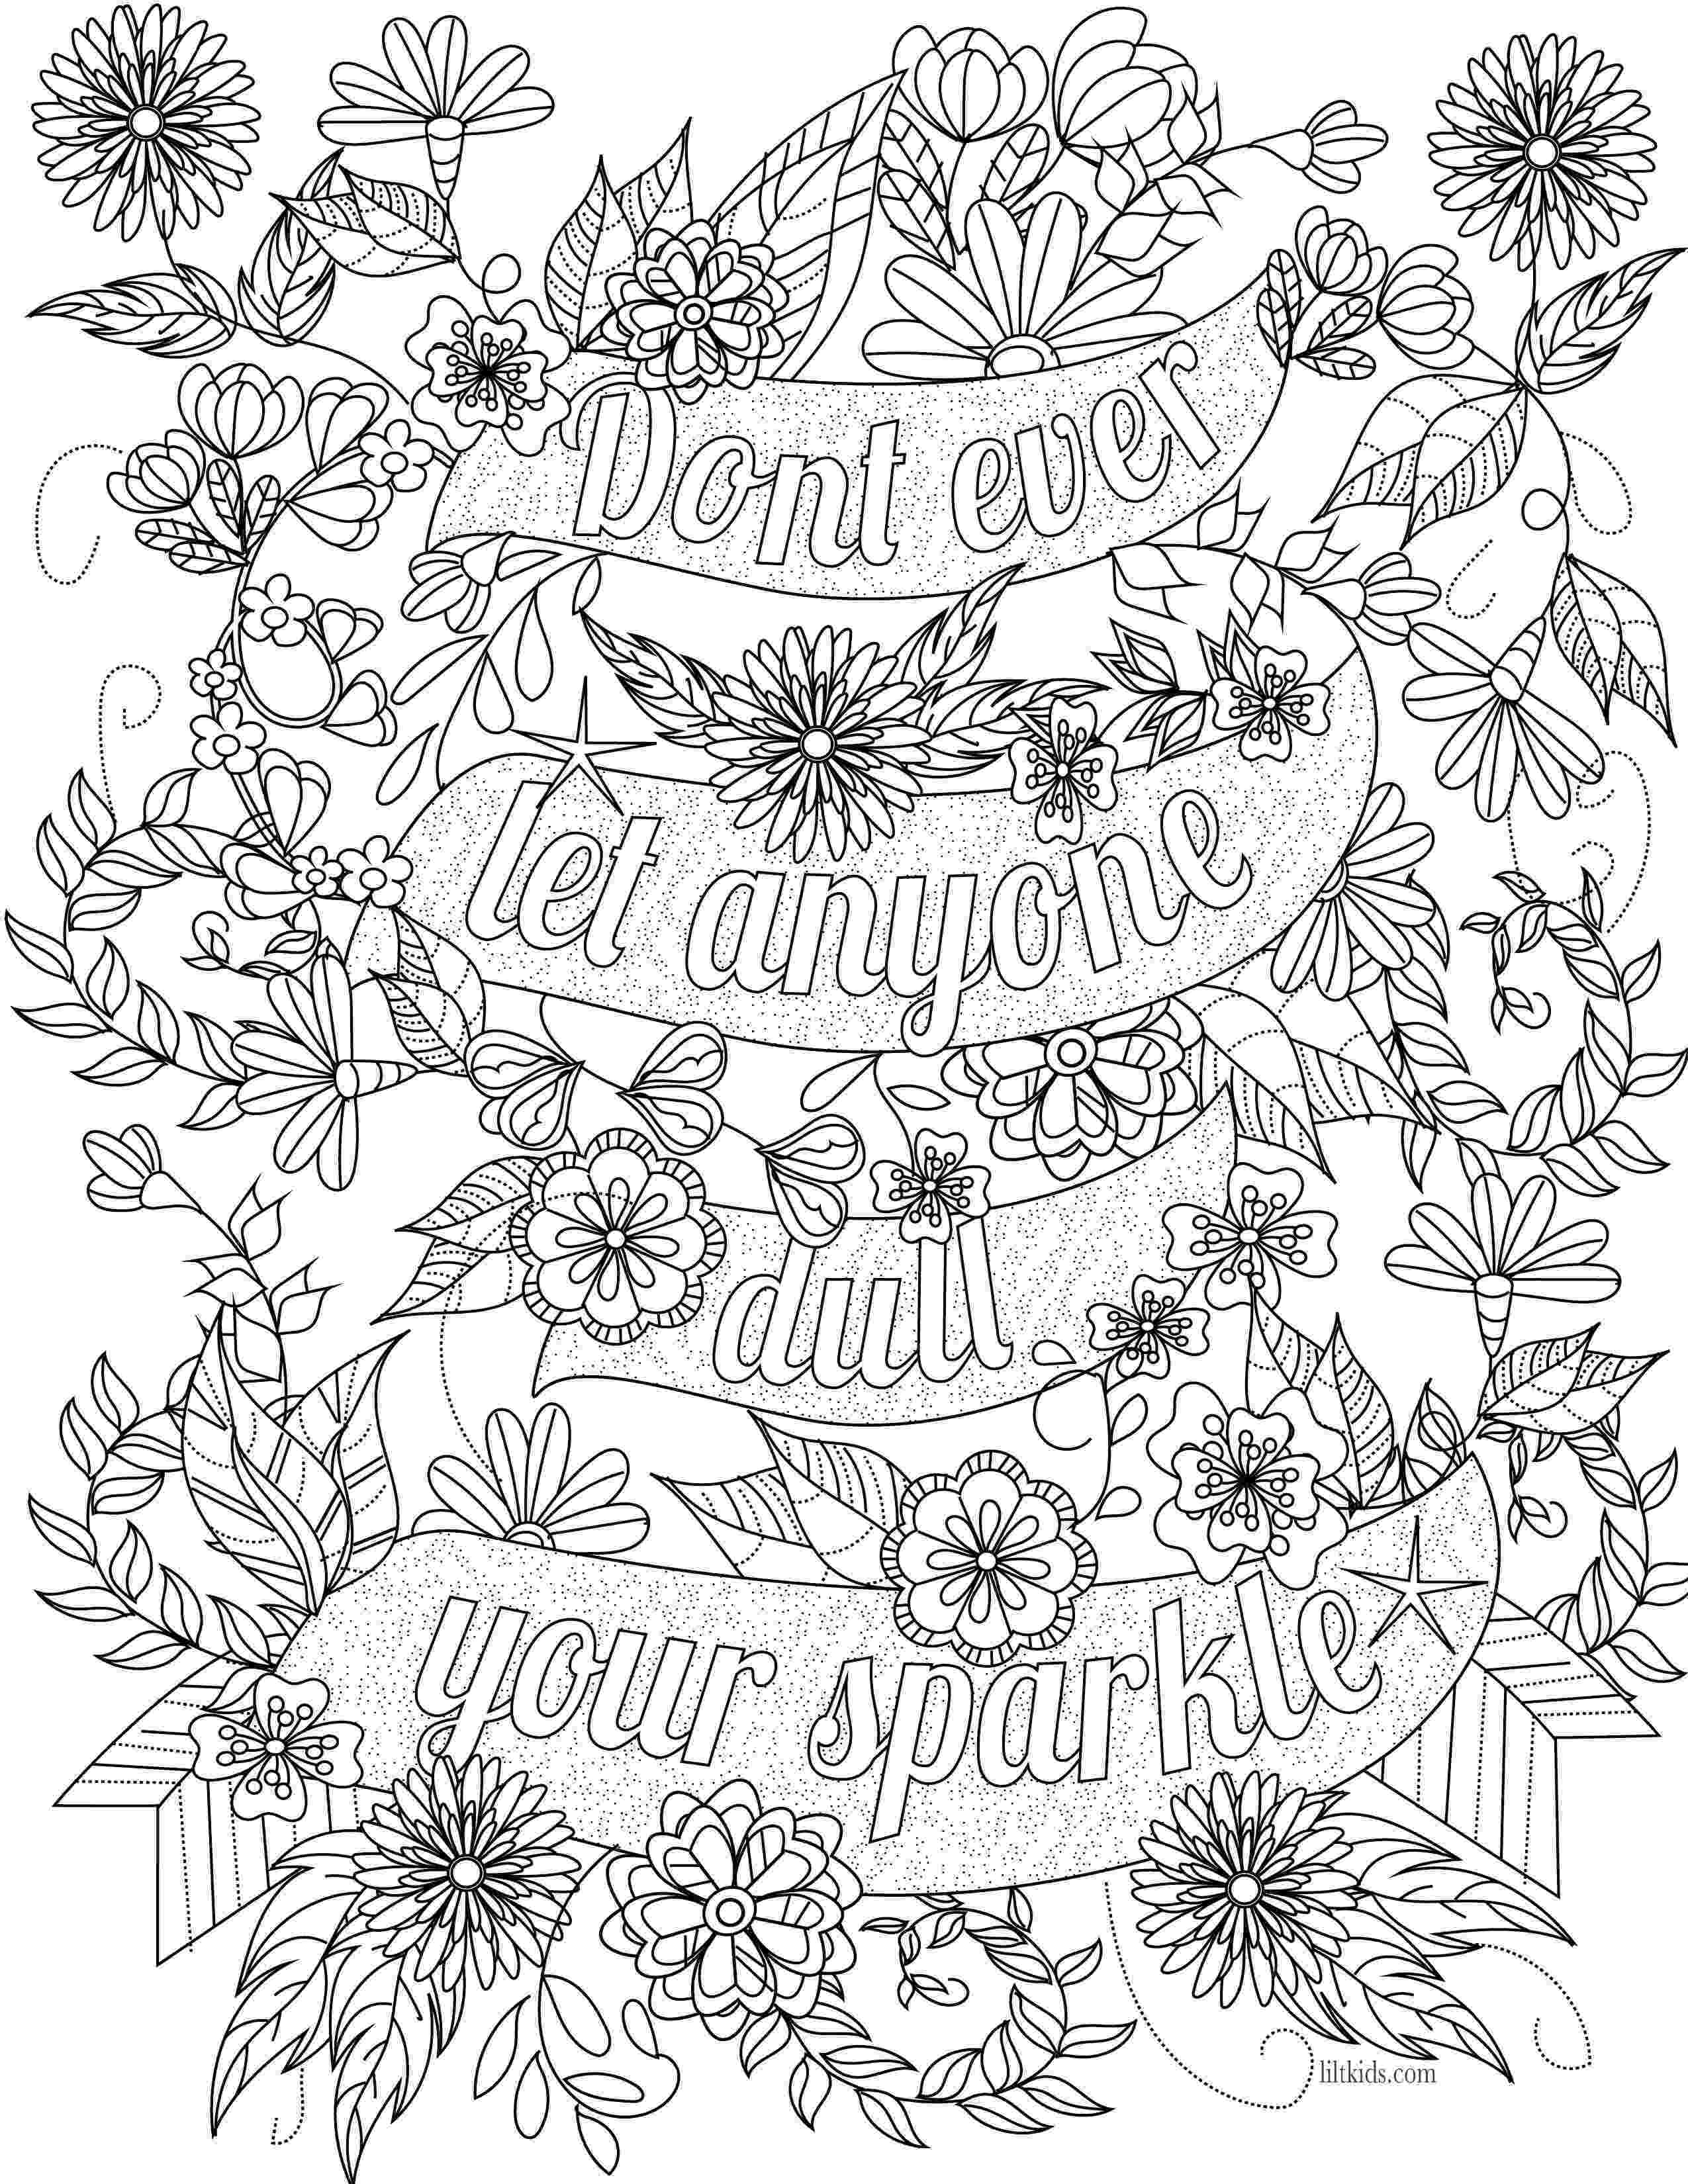 free printable quote coloring pages for adults free printable love quotes coloring sheets sarah titus pages for coloring adults printable free quote